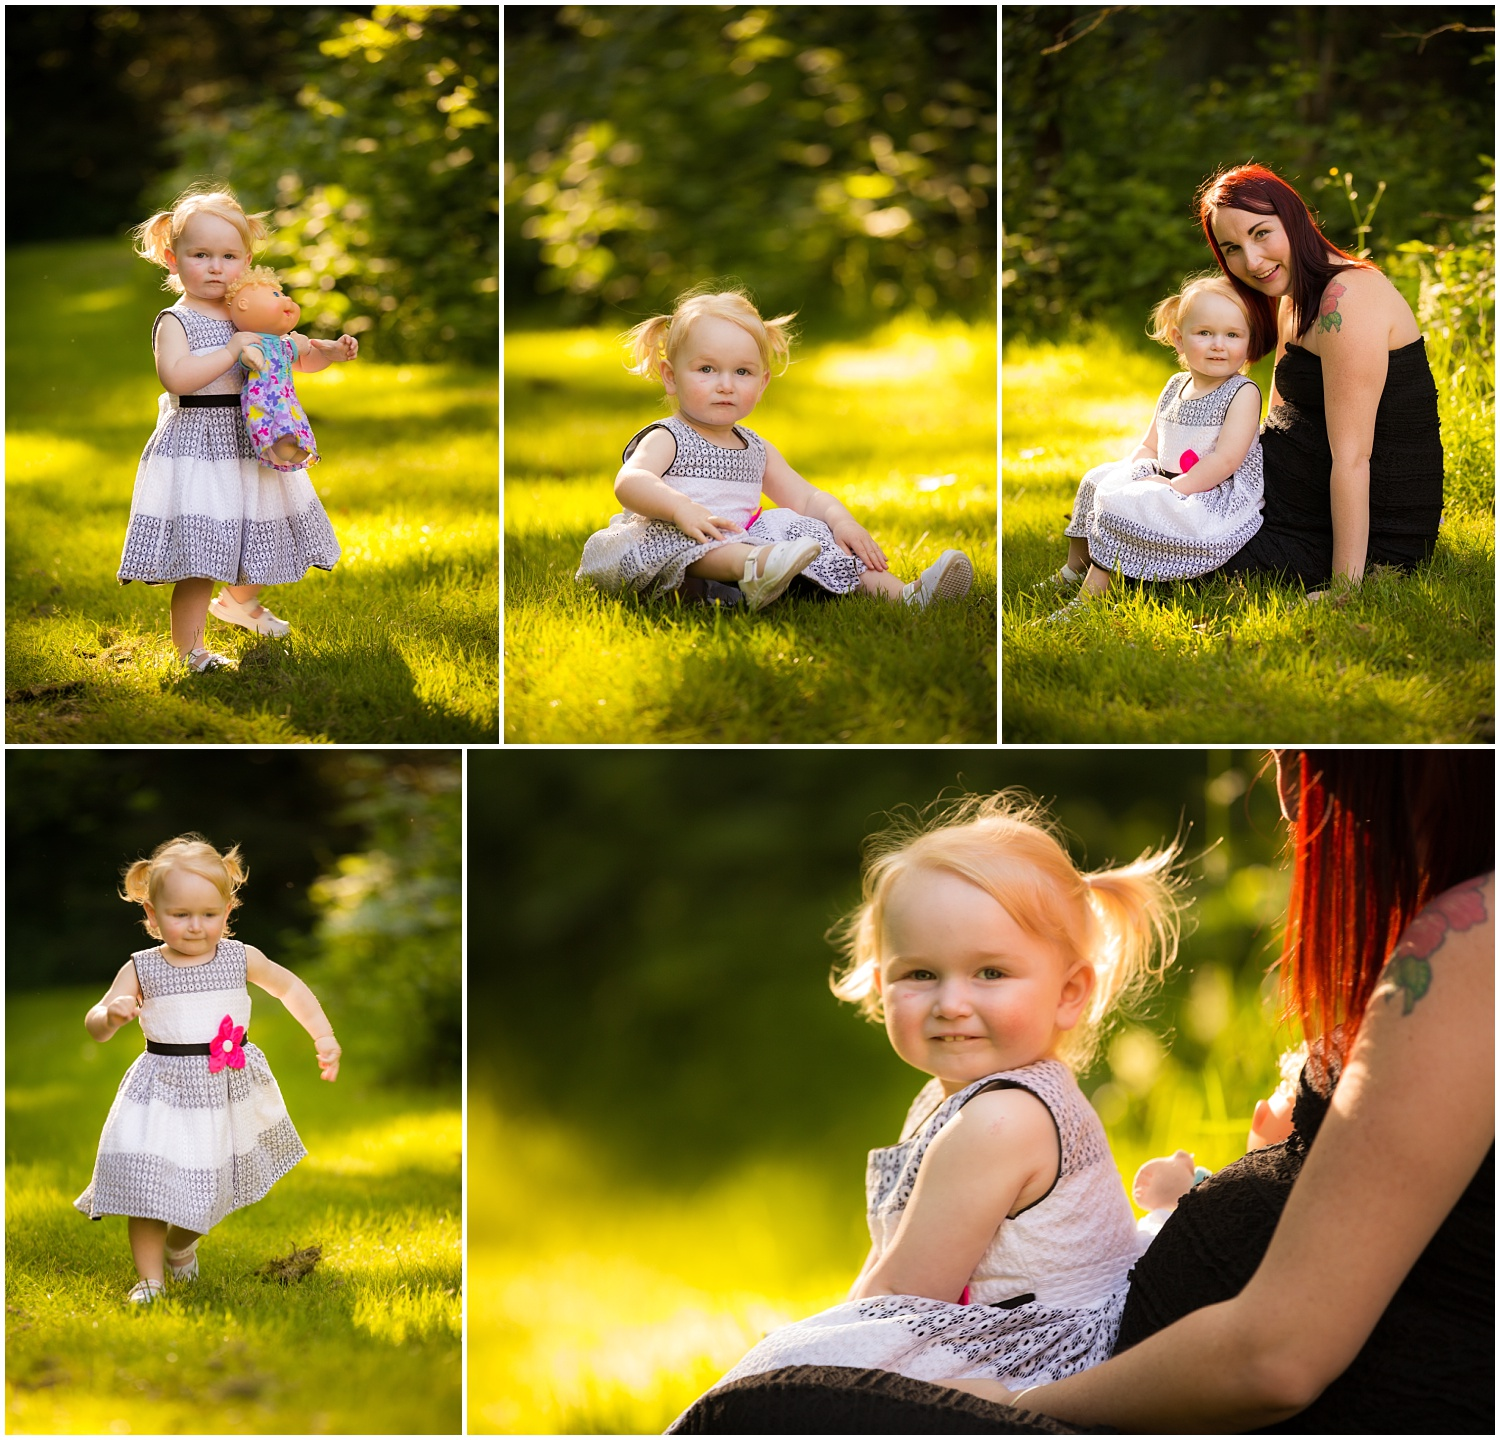 Amazing Day Photography - Derby Reach Park Maternity Session - Langley Maternity Photographer (5).jpg